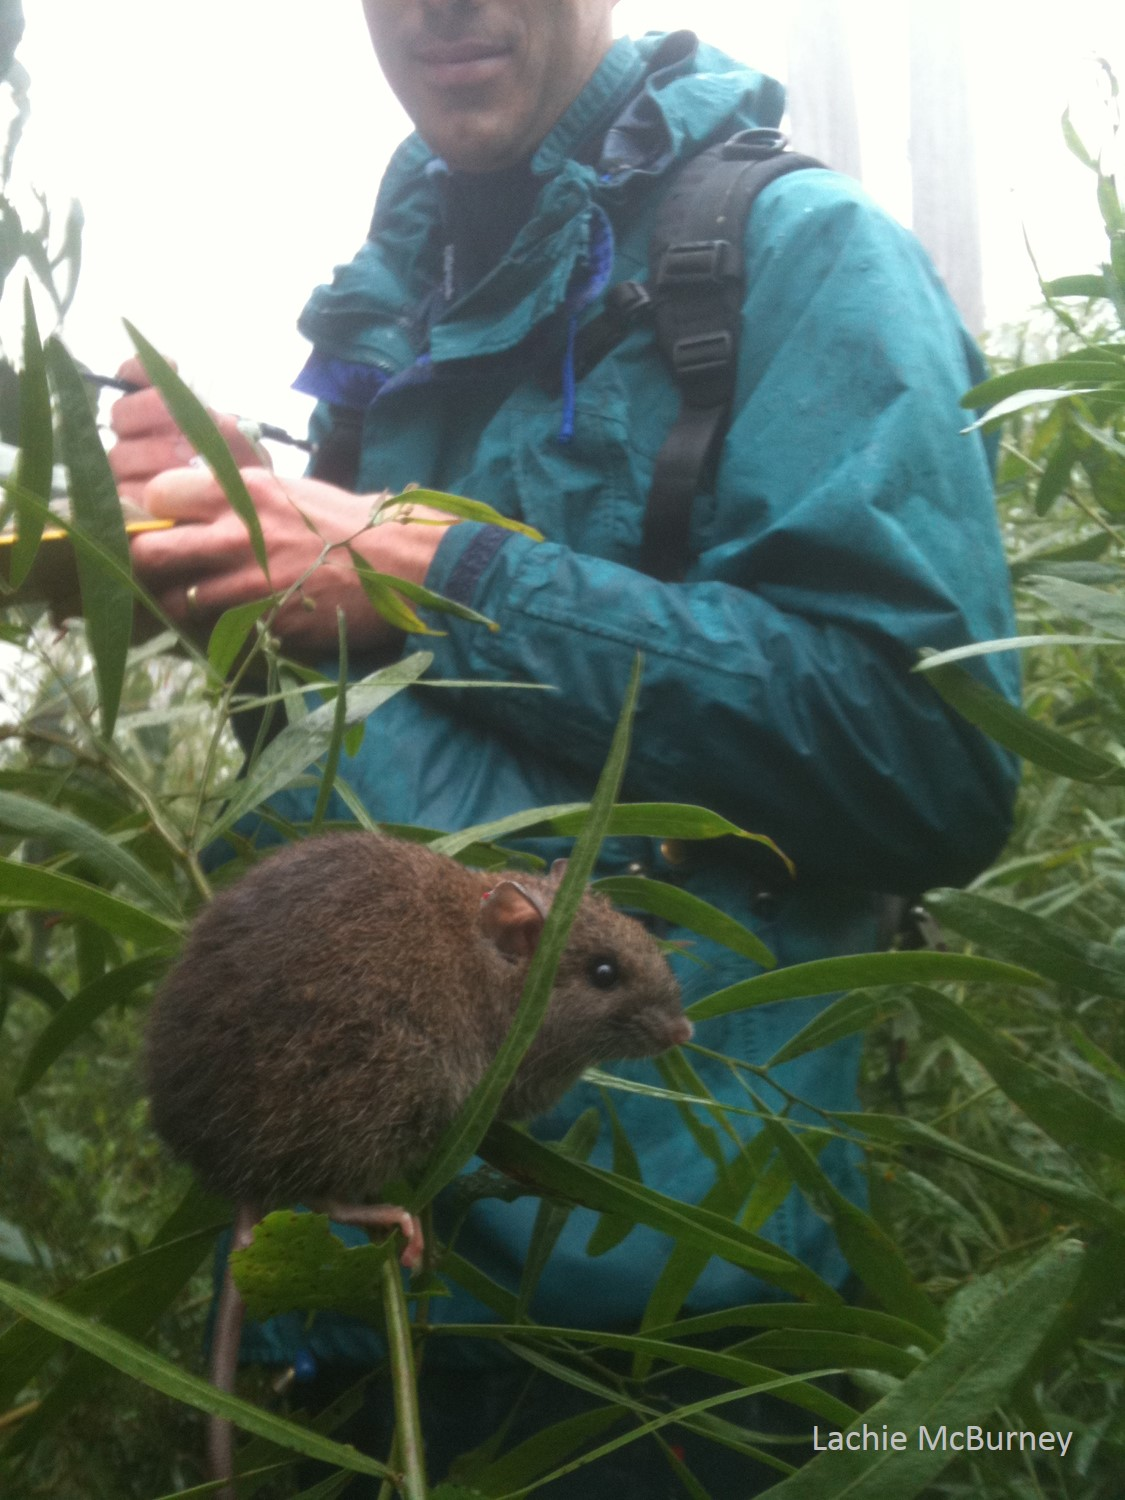 Dr. Sam Banks undertaking his small mammal surveys after the Black Saturday bushfires in 2009.  This Bush Rat  Rattus fuscipes  was released from a trap and didn't seem to concerned with our presence!